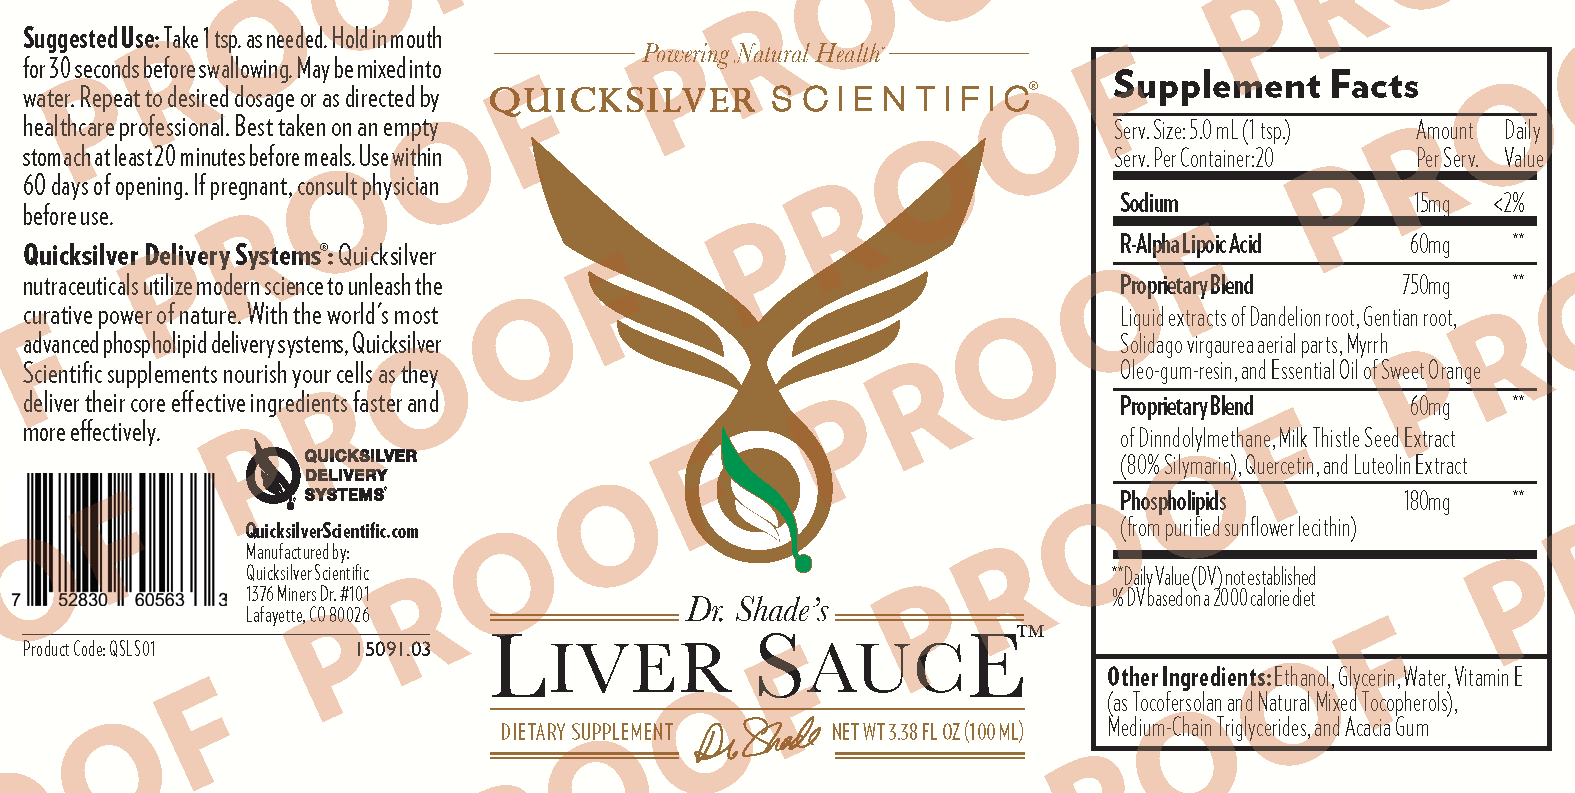 Liver Sauce 100ml Herbal Line 1509103 Zyflamend 120 veg caps